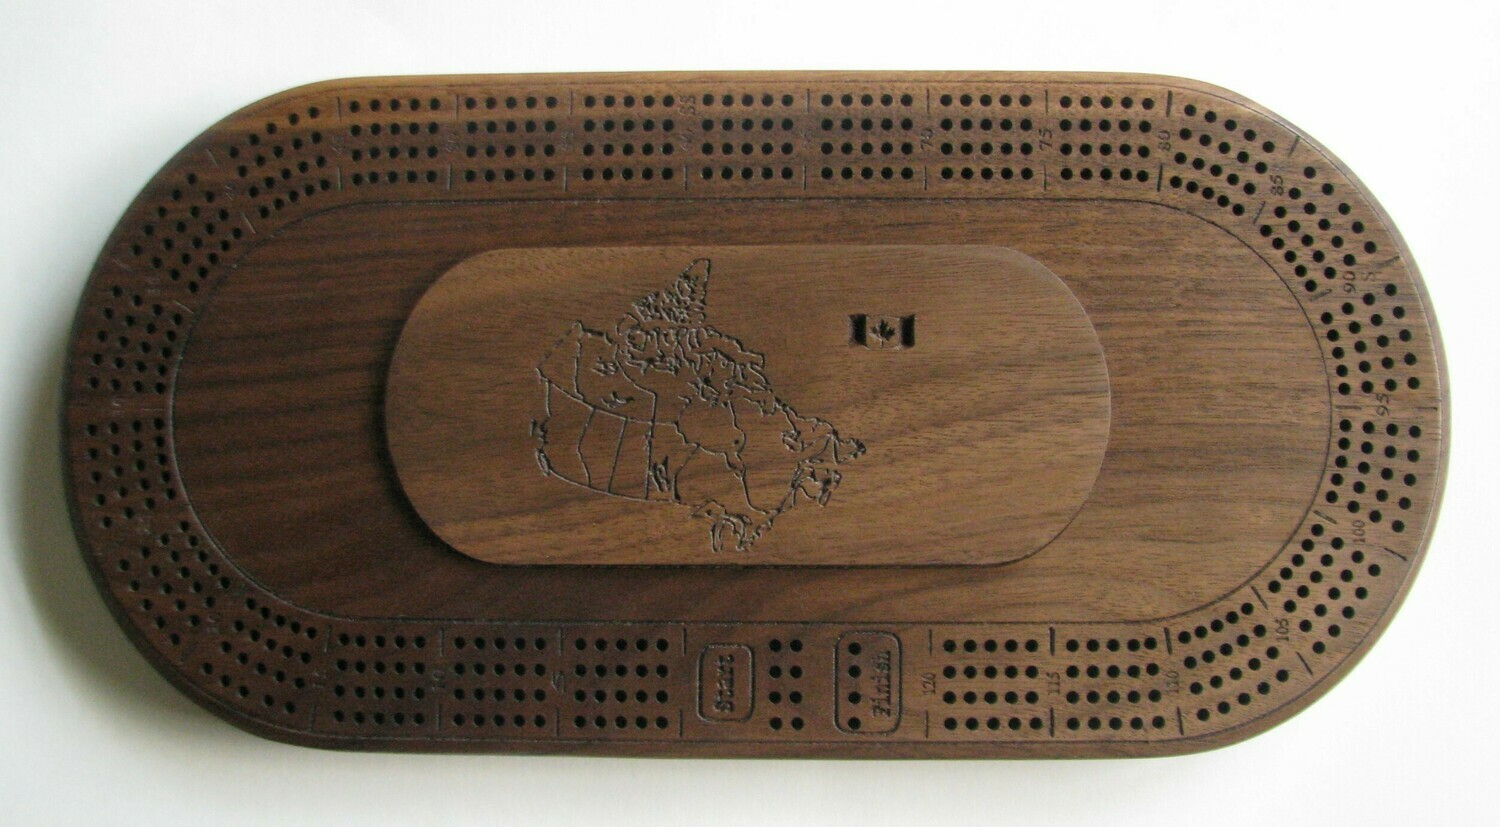 Walnut Wood Oval 4 Track Cribbage Board with Map of Canada